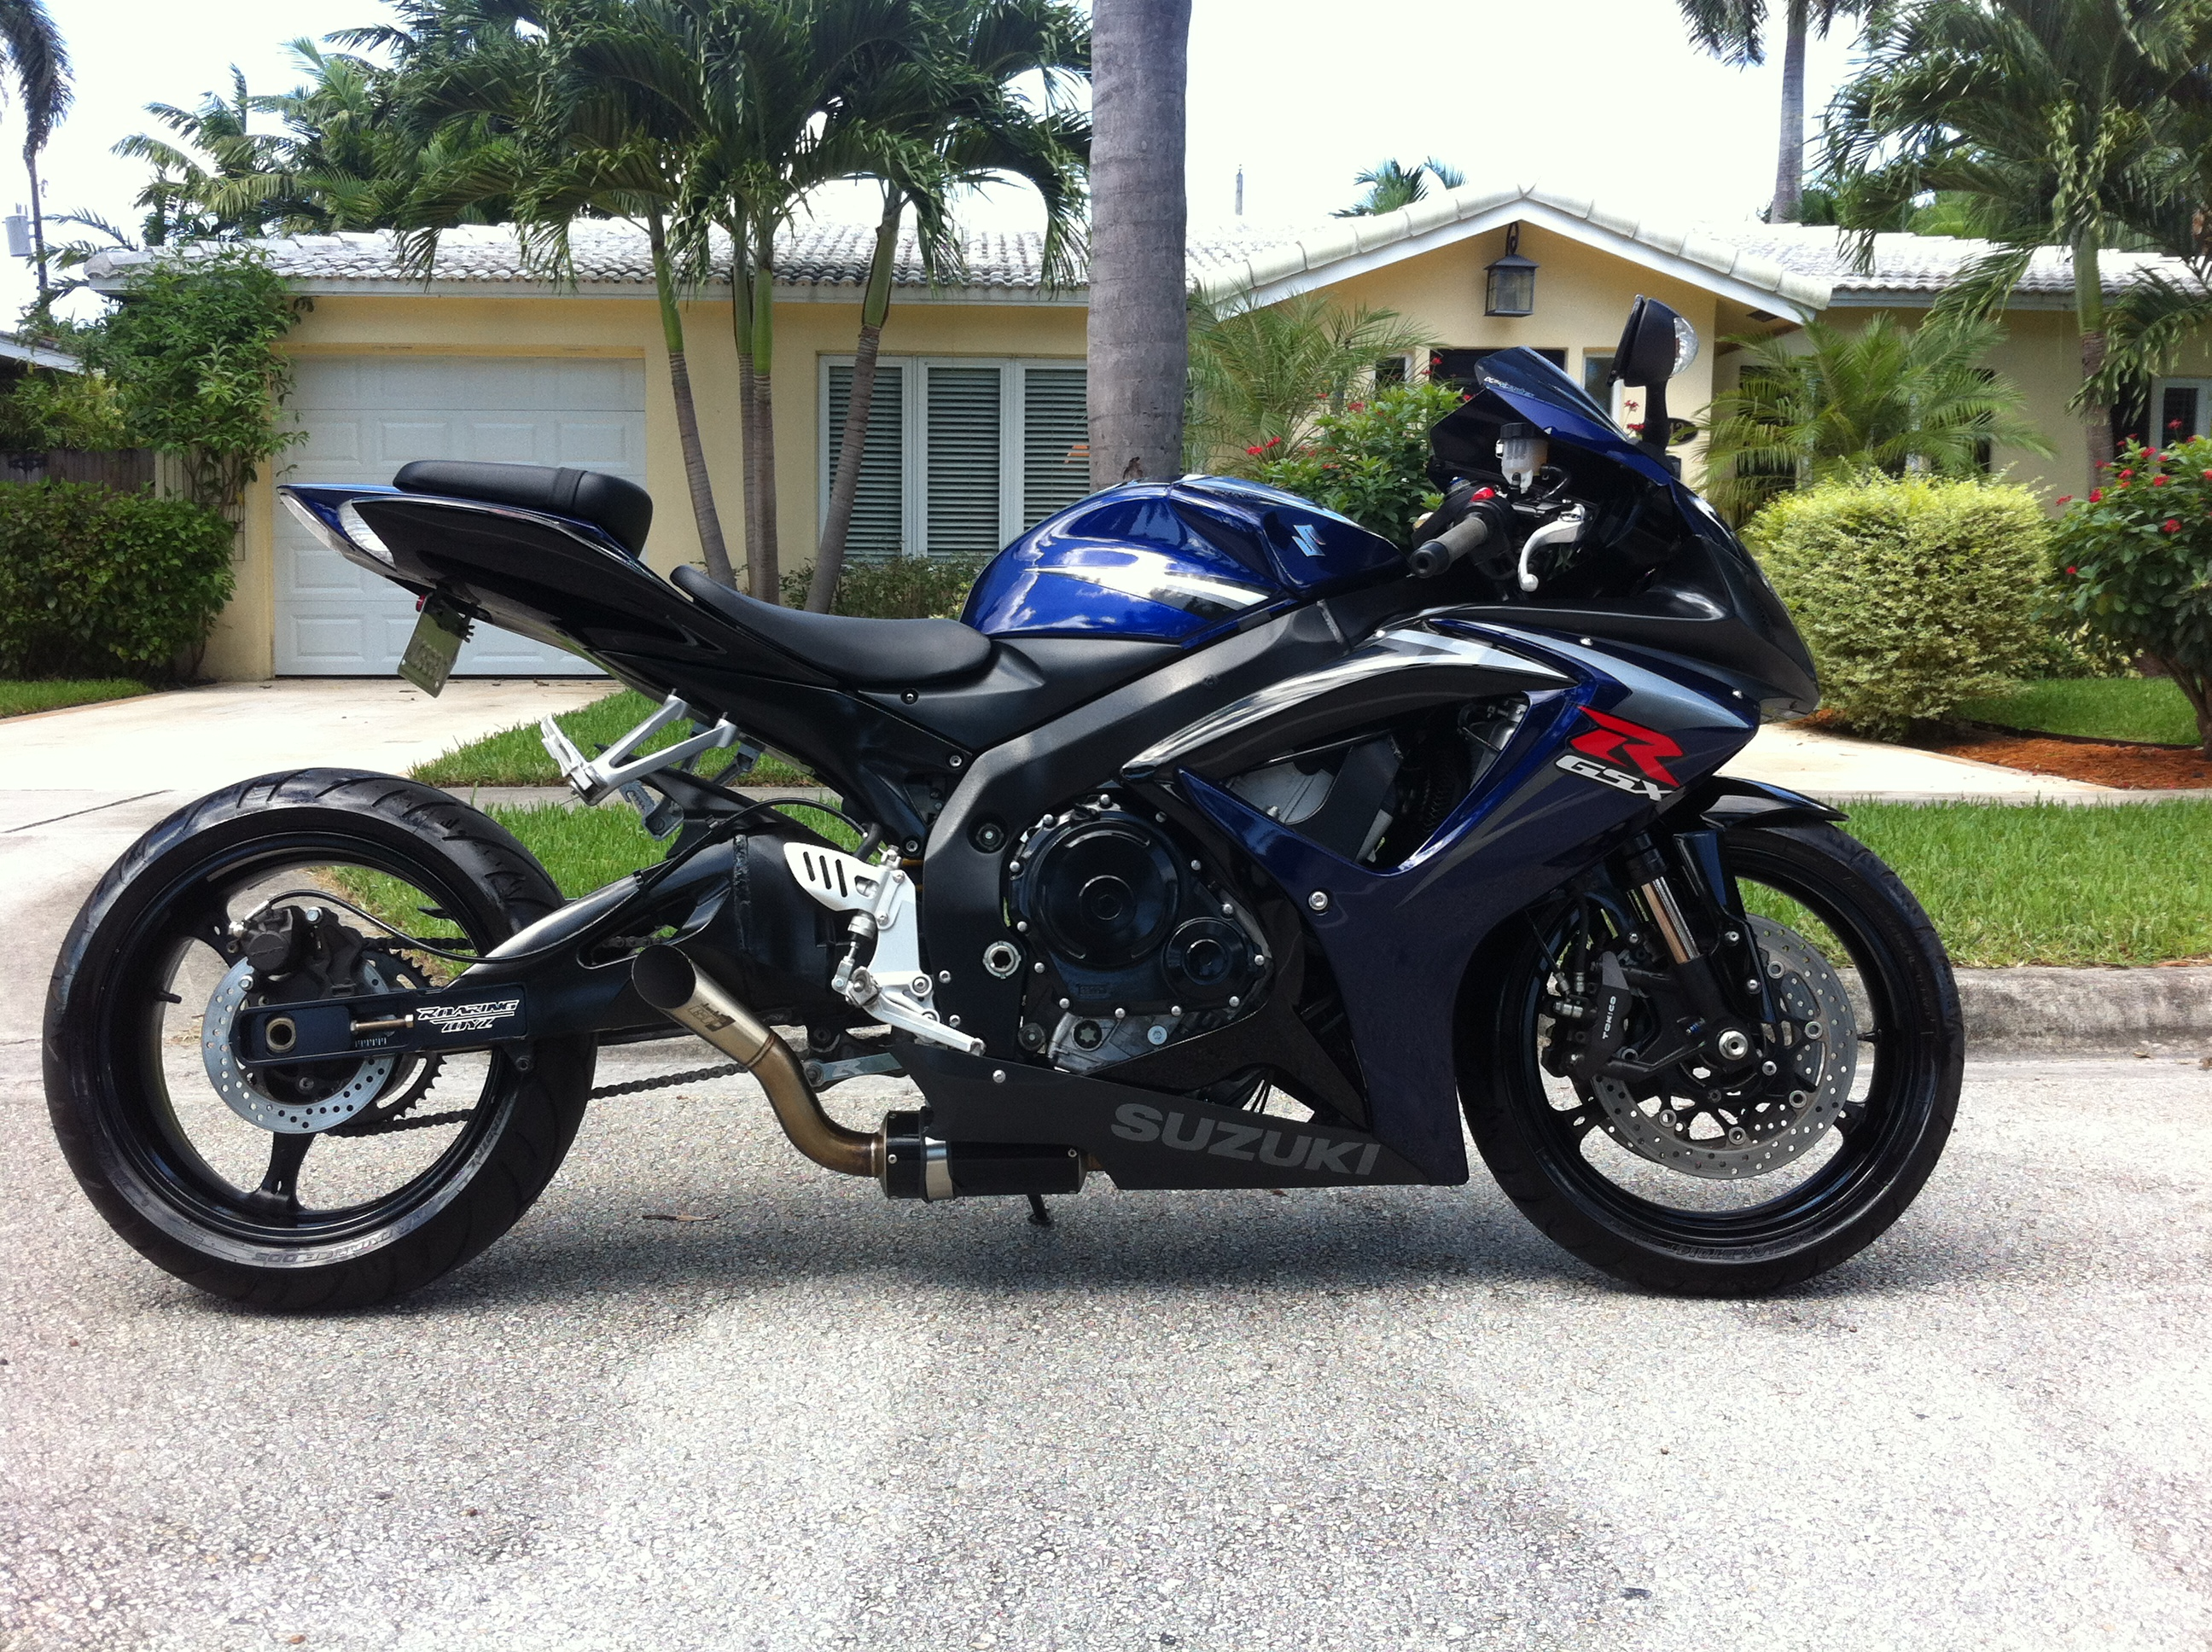 Sell Motorcycle Hollywood We Buy Motorcycles in Florida